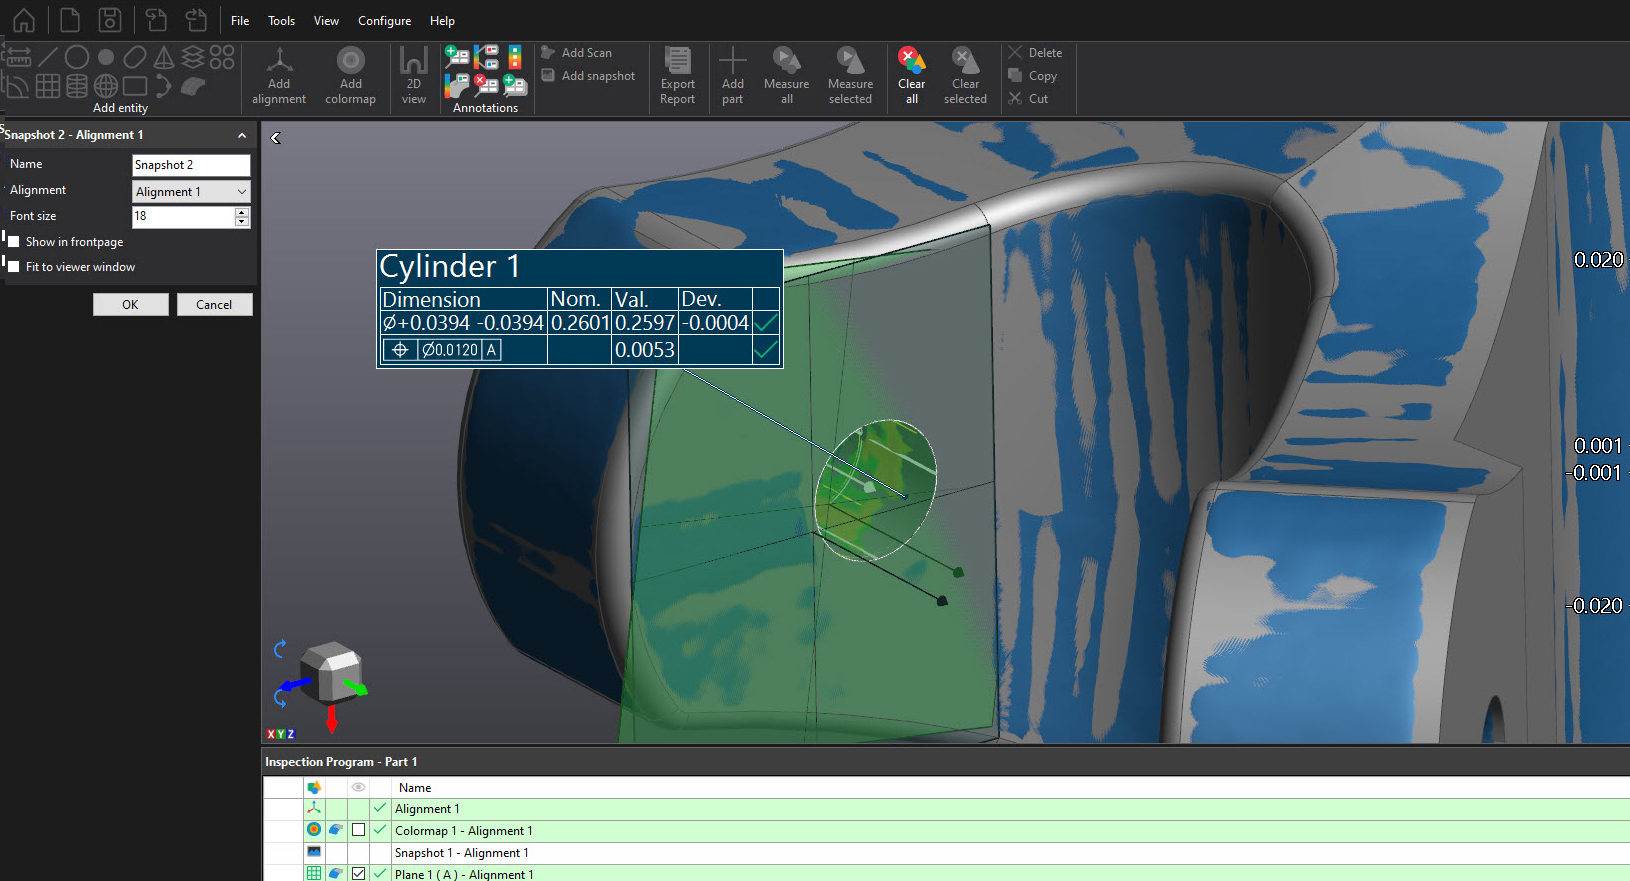 Learn More About the Creaform VX Inspect GD&T Support